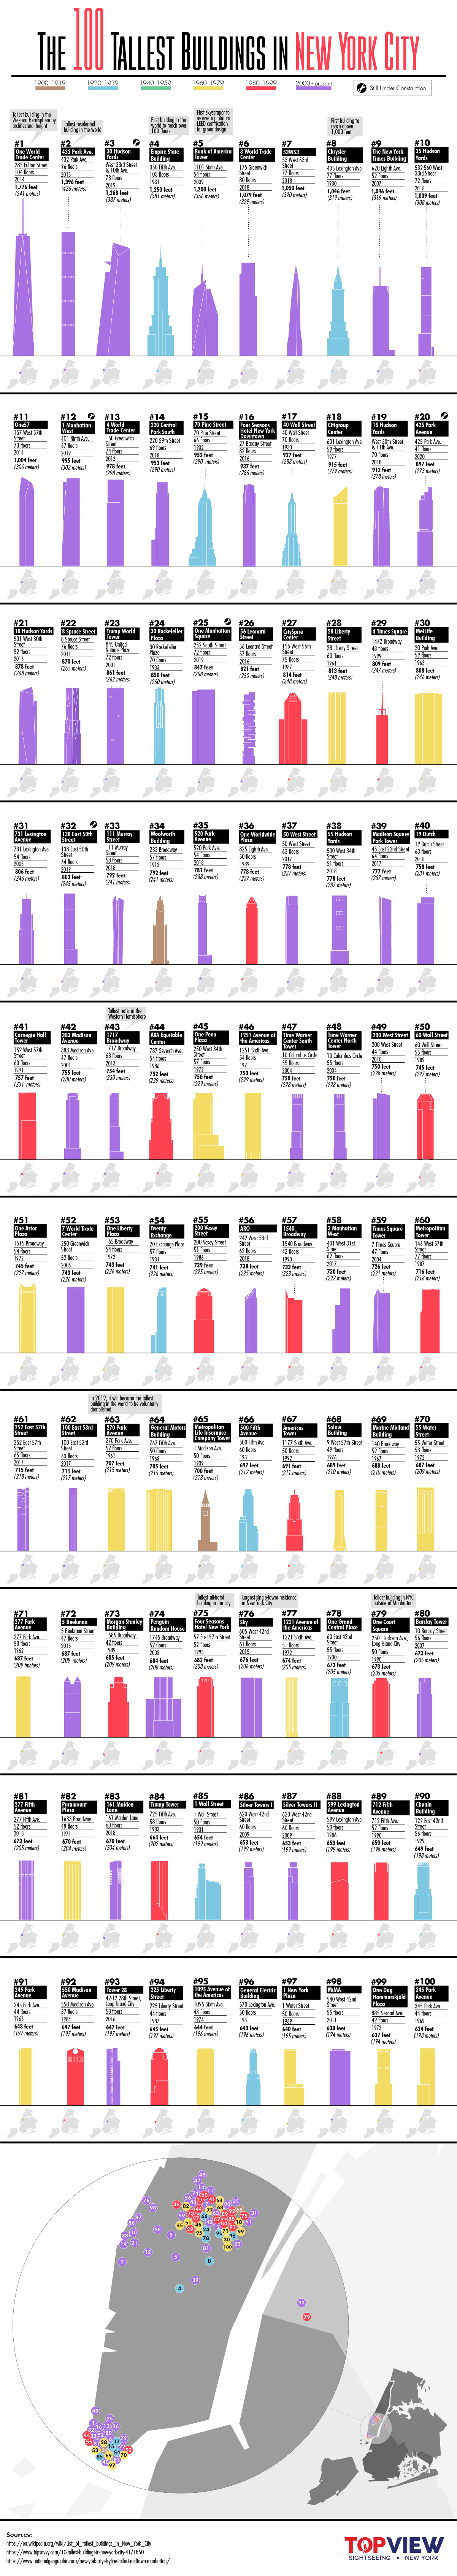 100 tallest buildings in nyc